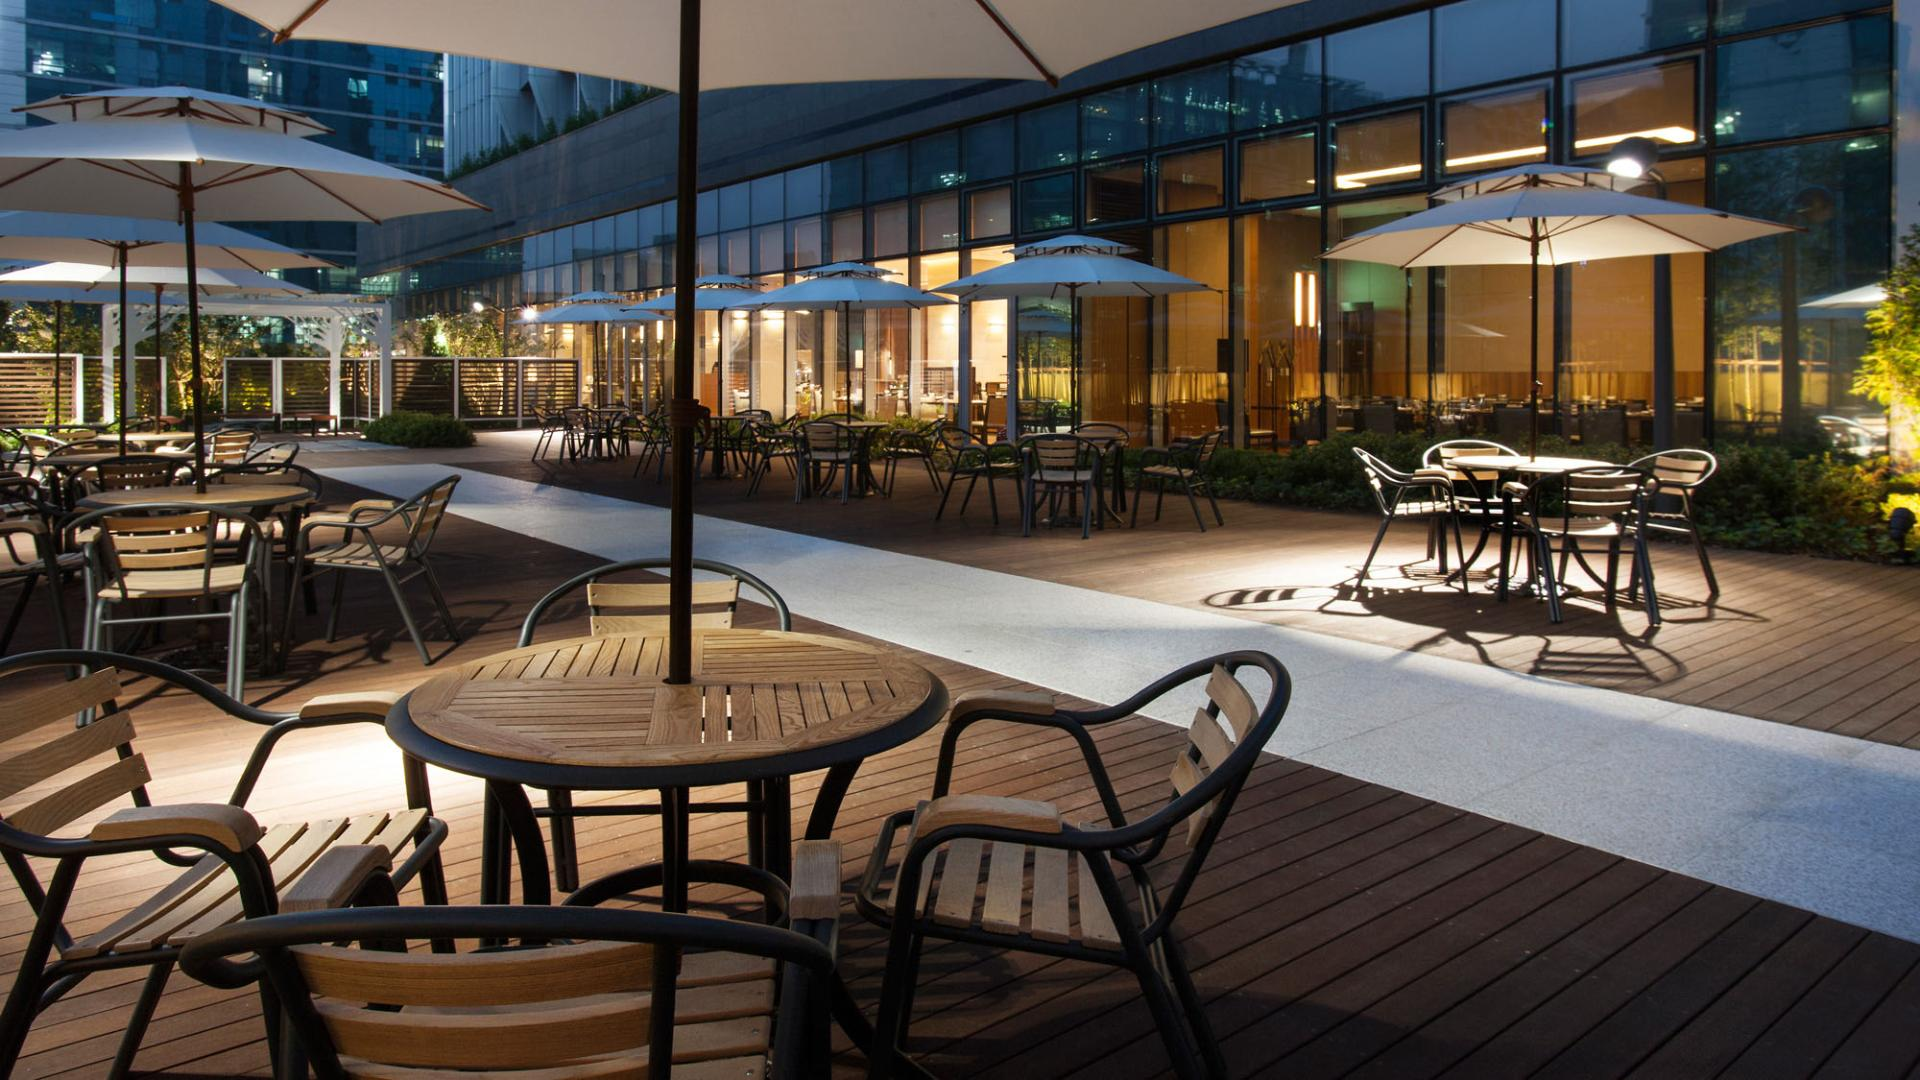 Lotte City Hotel Guro - Dining - Bar & Lounge - Terrace